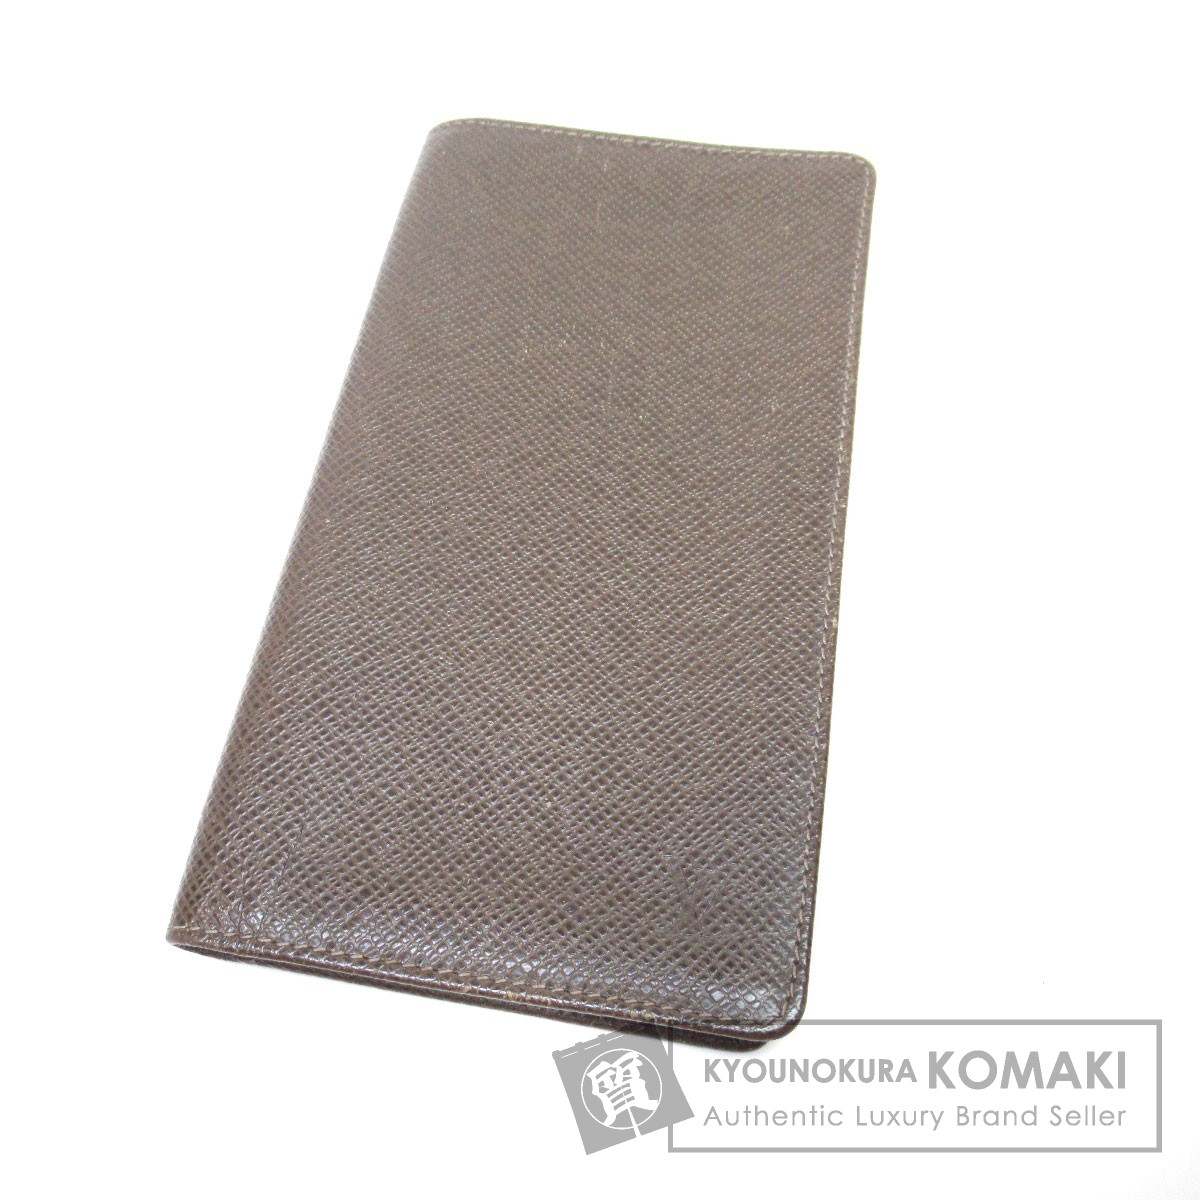 f199a9ee1d00 Kyonokura Komaki Brand Cheapest Challenger  Authentic LOUIS VUITTON ...